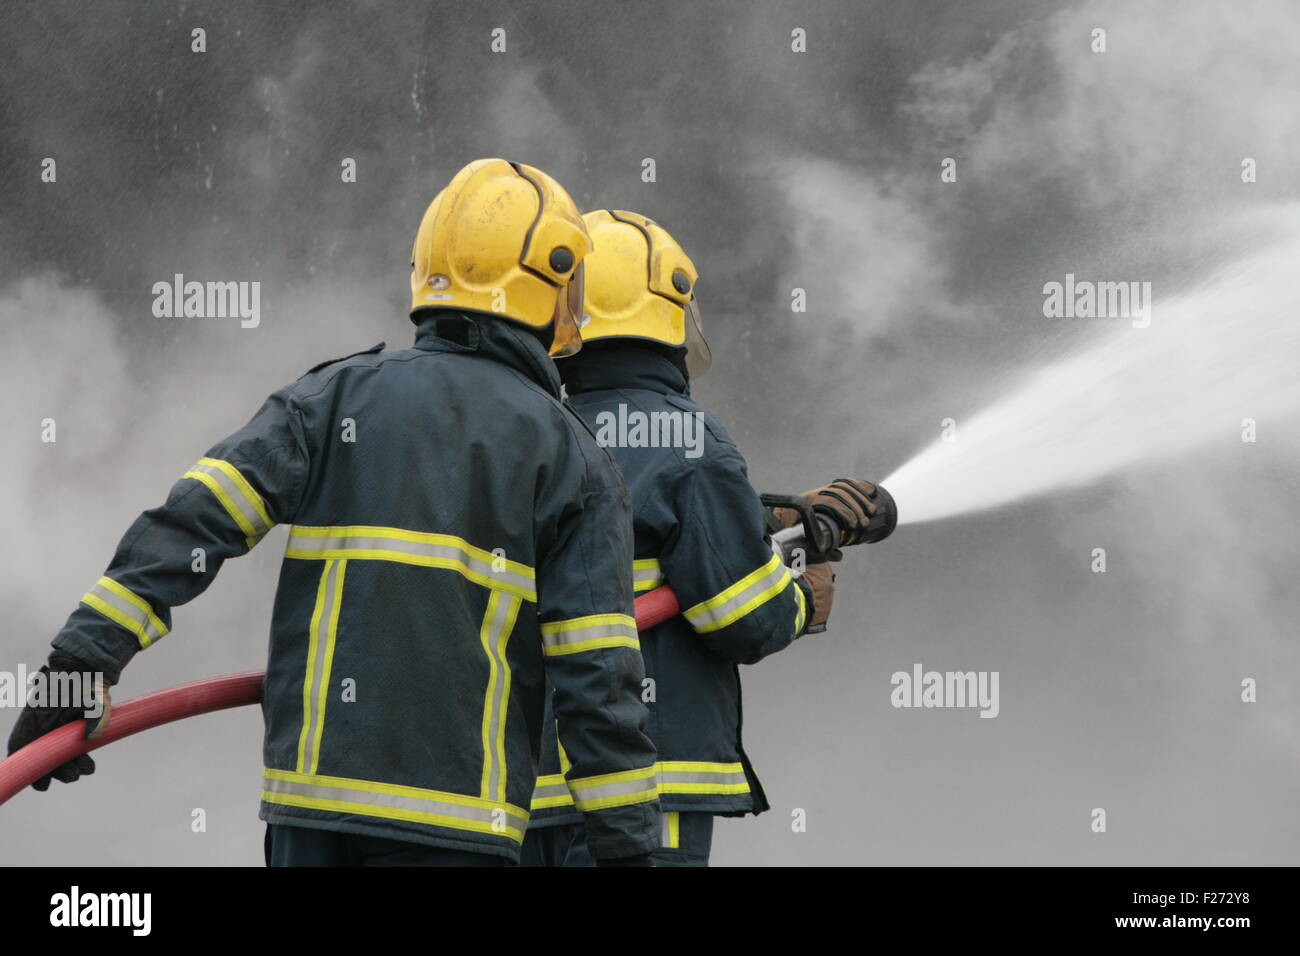 fire-fighters fighting blaze with hose - Stock Image